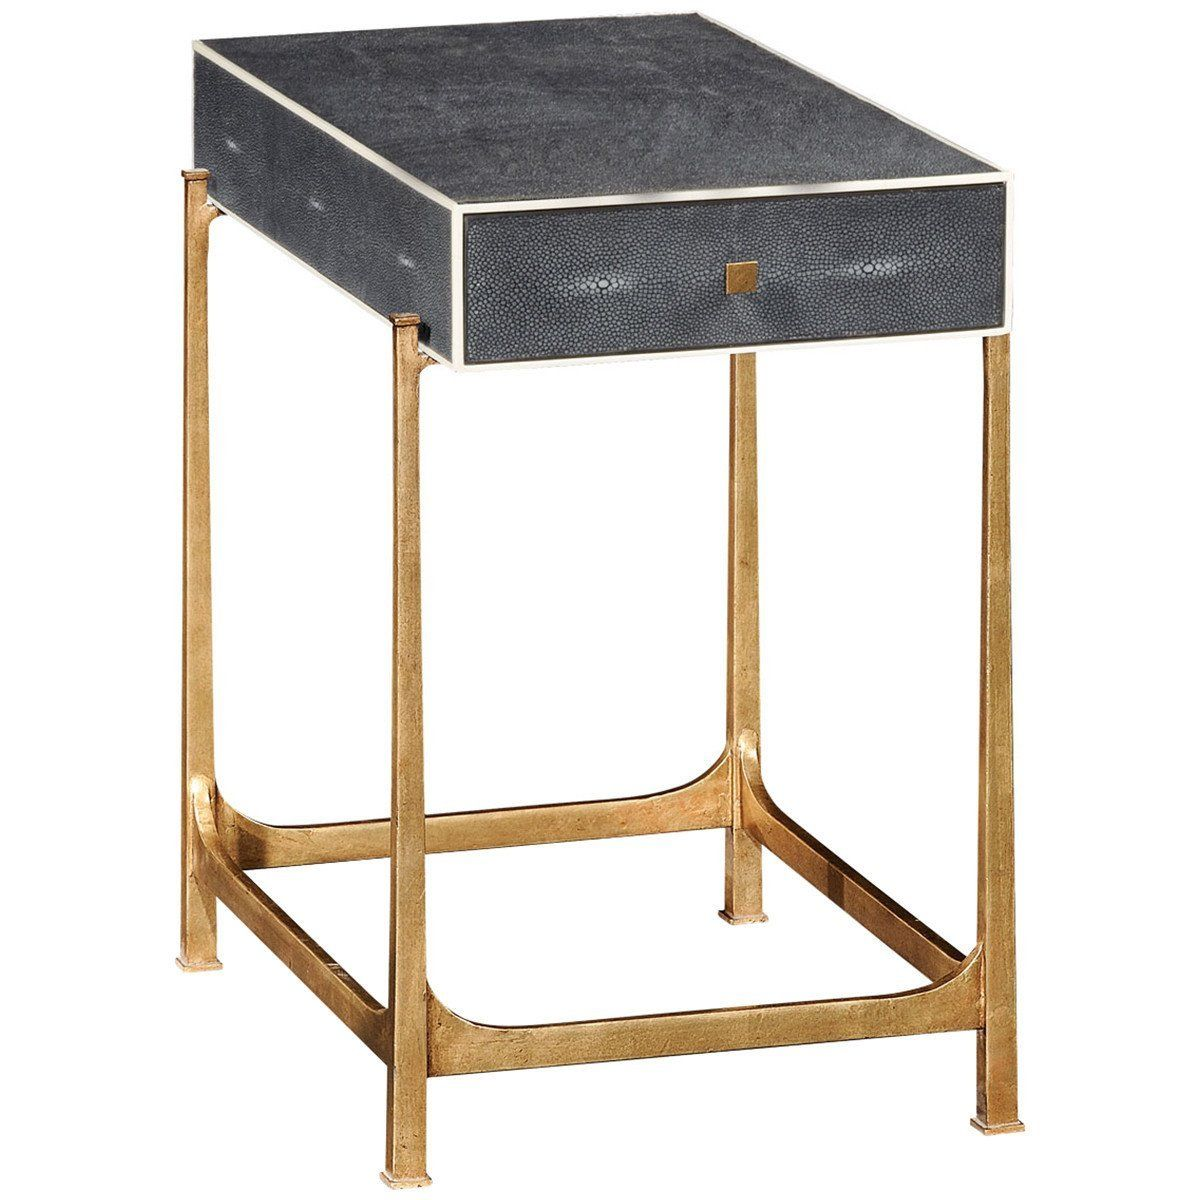 Jonathan Charles Anthracite Faux Shagreen and Iron Side Table is part of Home Accessories Luxury Beverly Hills - Available in Bronze, Gold and Silver  Contemporary styled wrought iron framed sofa table, antiqued gilded finish and the box top with black faux shagreen finish heightened with bone inlay  Inspired by Art Deco luxury furniture of the 1930's  Features Luxe collection Available in bronze, gold, silver finish Box top Materials Iron, Faux Shagreen Dimensions Overall 16 14  w x 26 41  d x 25 07  h Package Volume 0 27 cu ft Actual Weight 52 91 pounds Shipping Weight 52 91 pounds